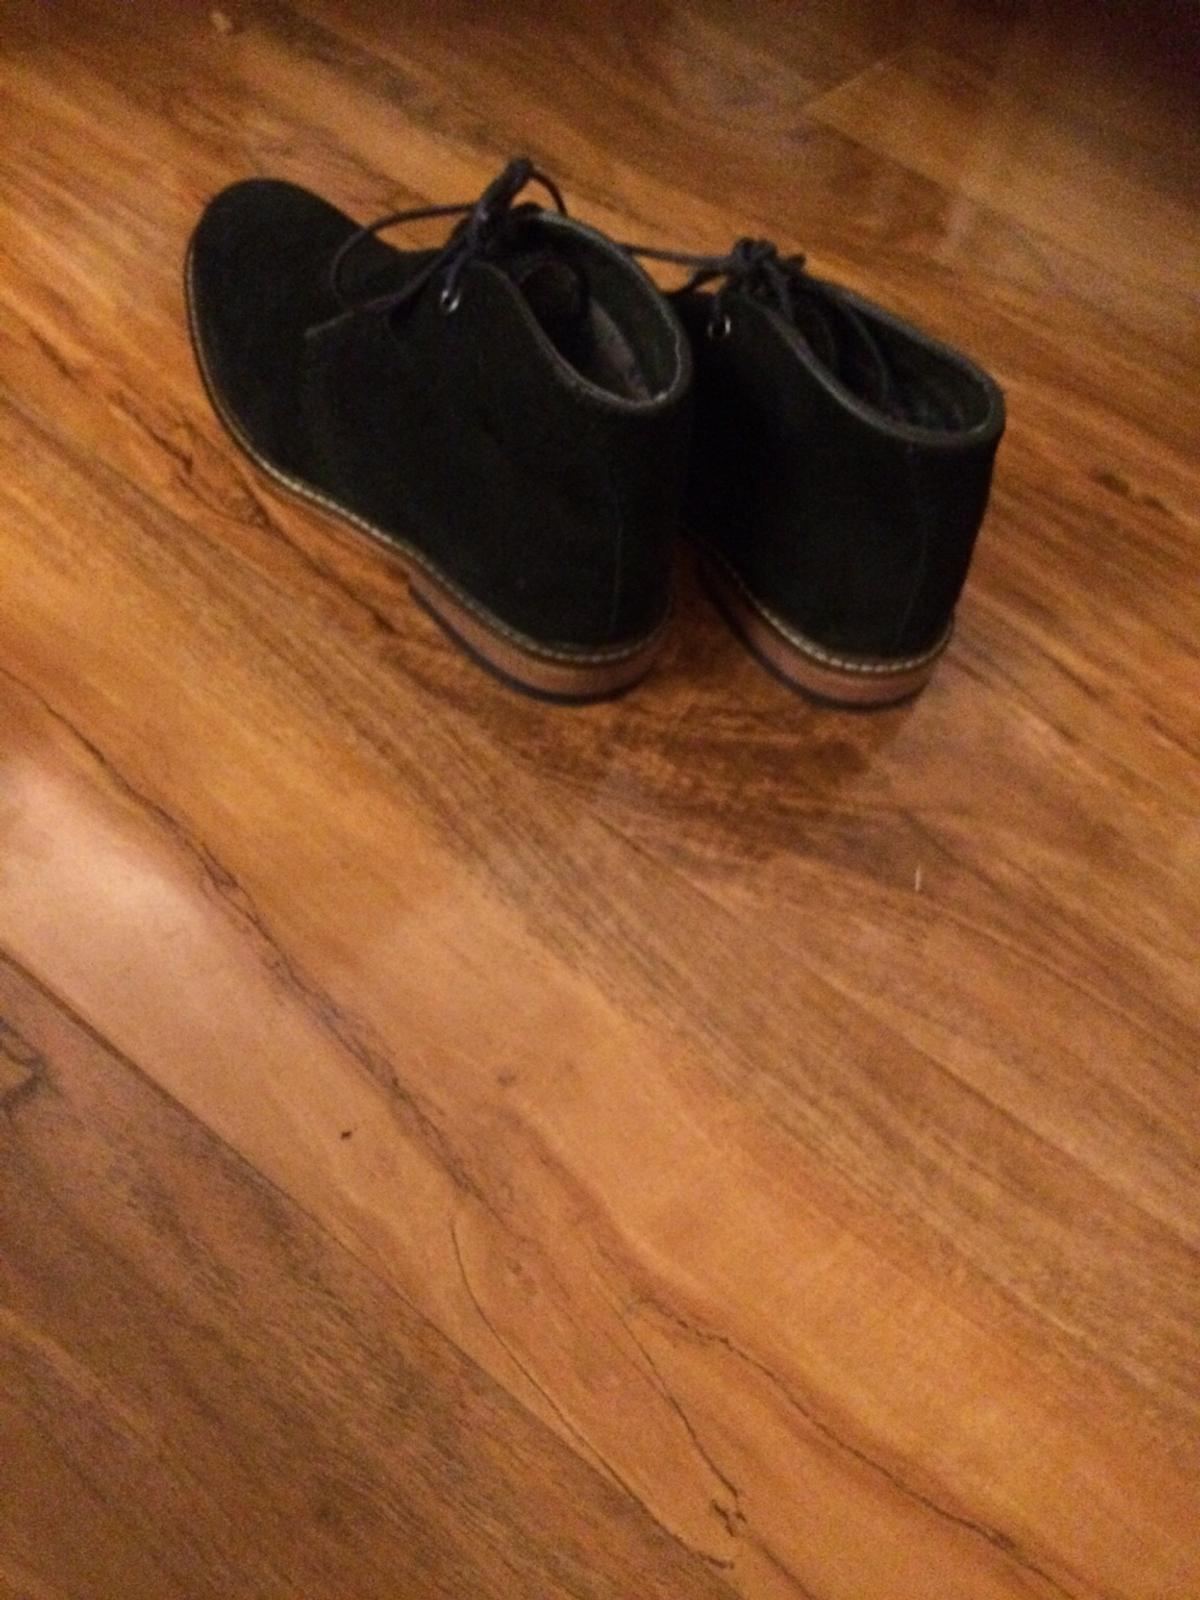 Amazing boys shoes very comfortable and good for special occasions.Size 2